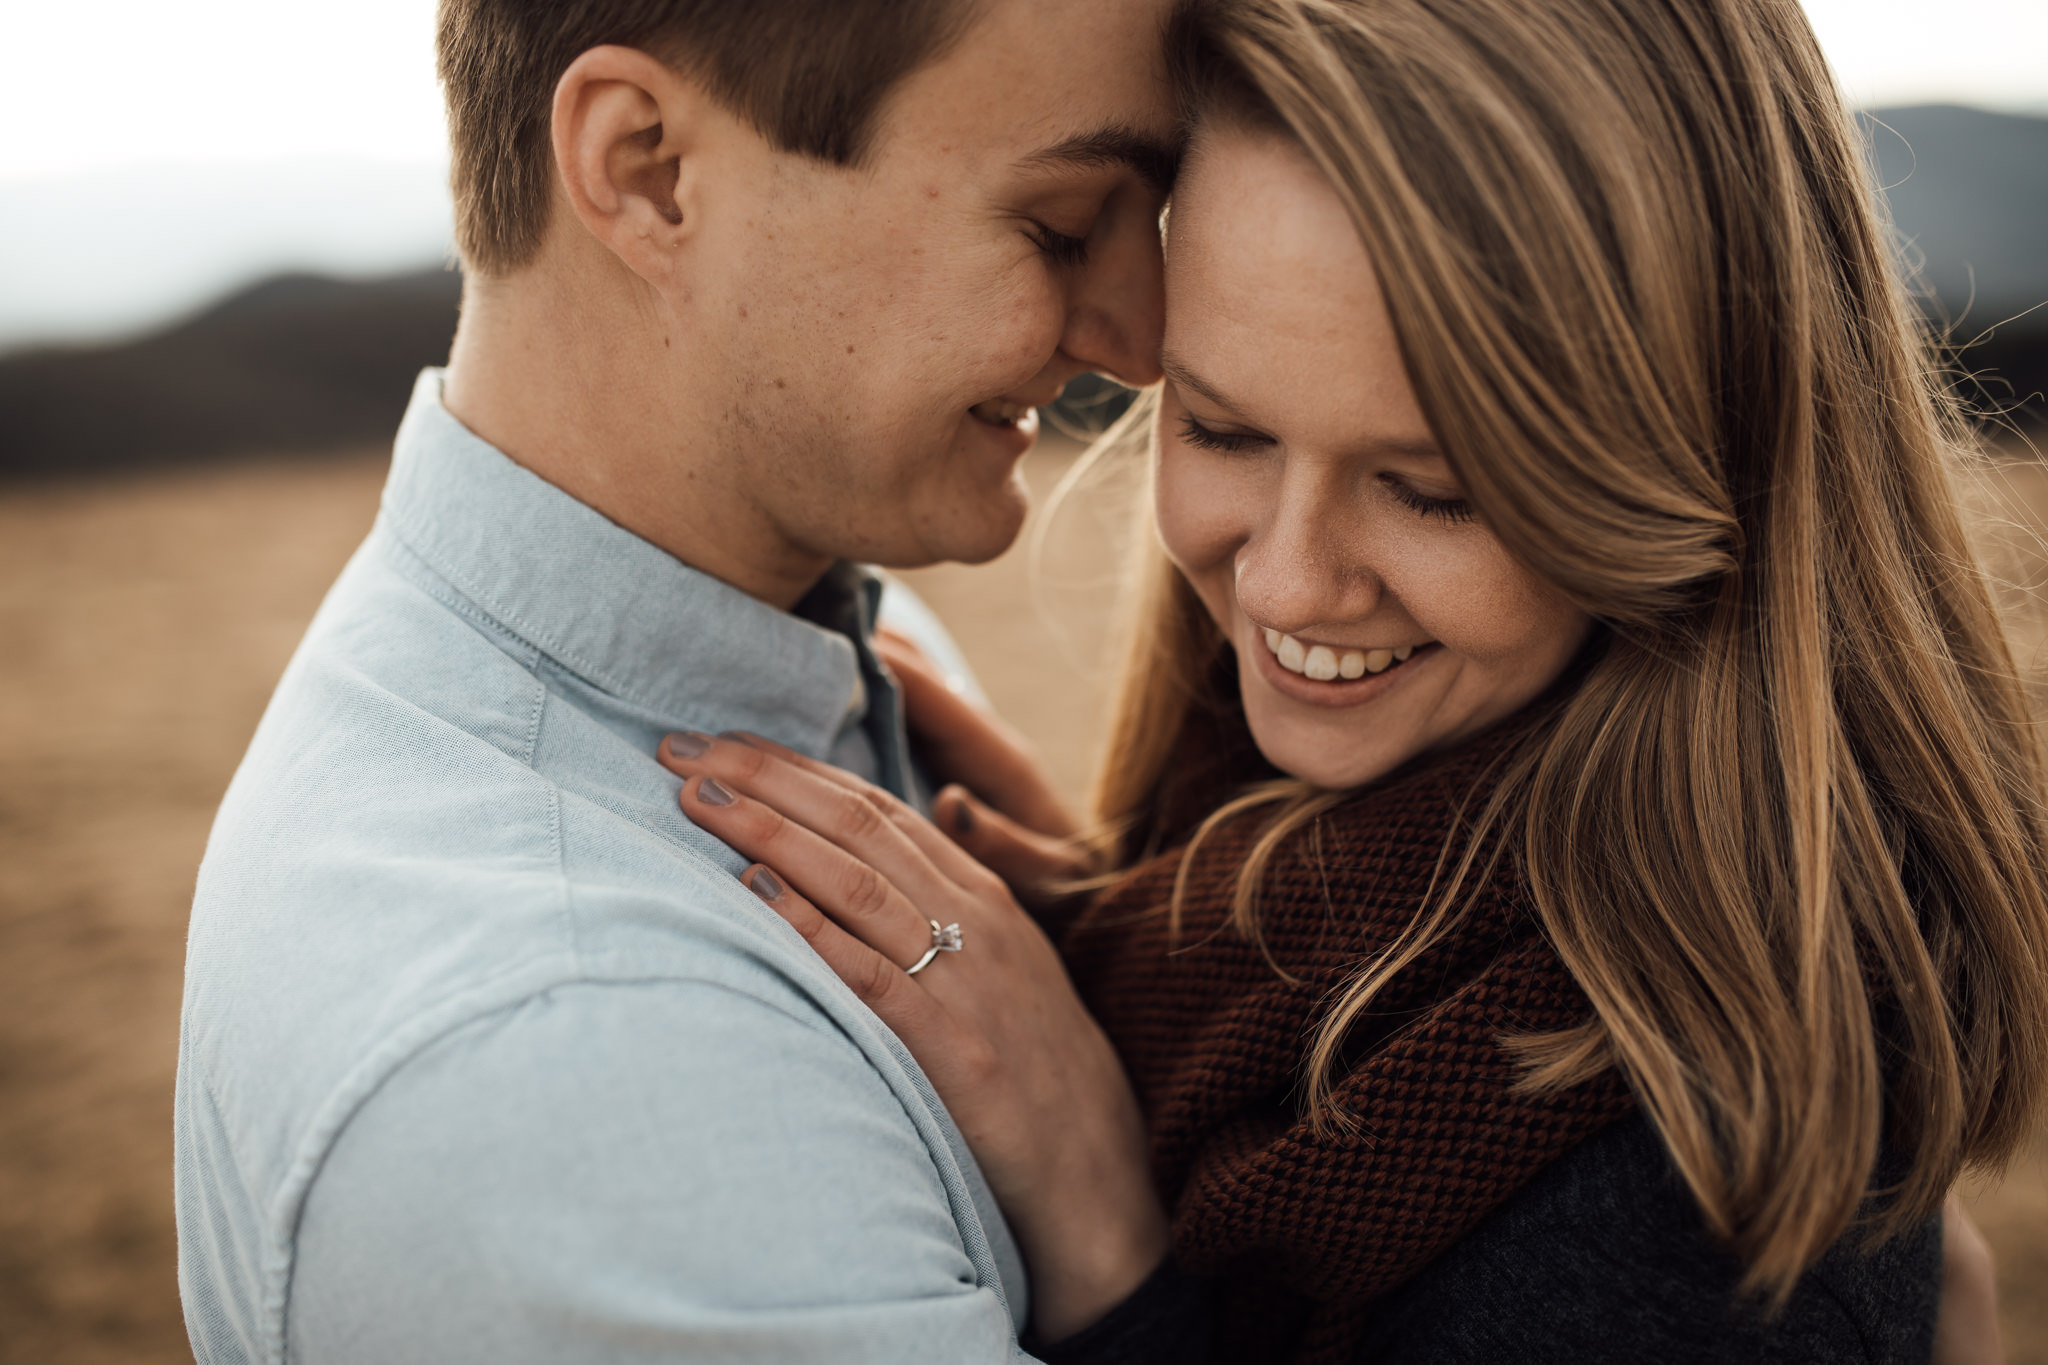 max-patch-engagement-pictures-cassie-cook-photography-asheville-wedding-photographer-16.jpg